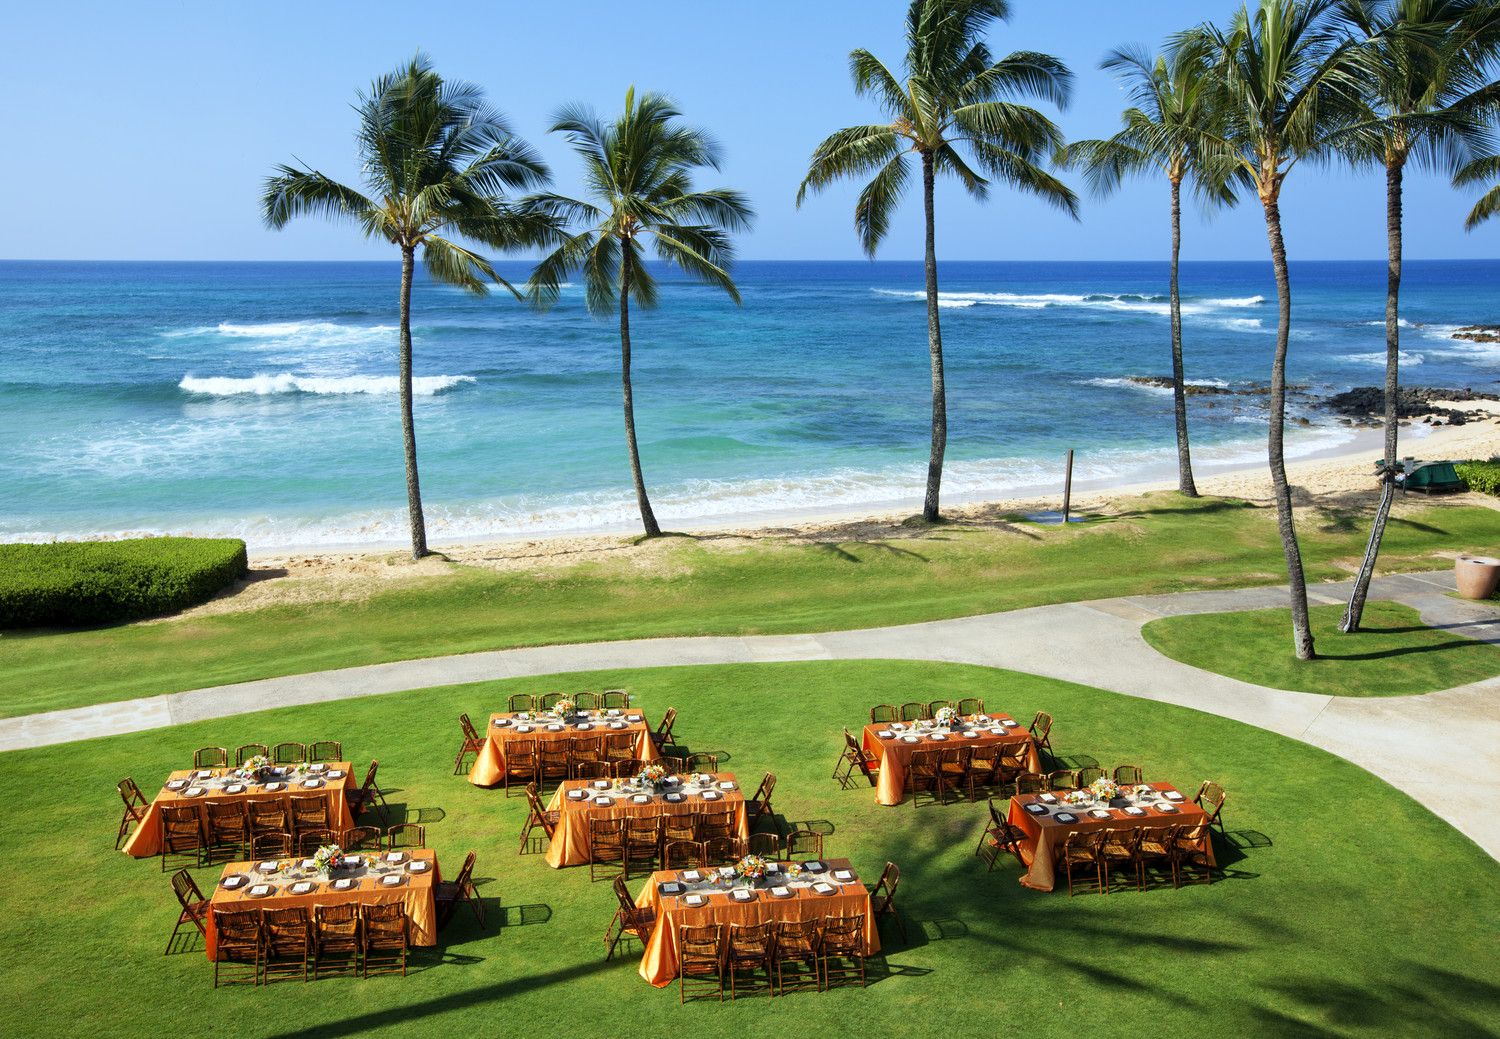 Kauai Meetings - Beach Lawn Reception